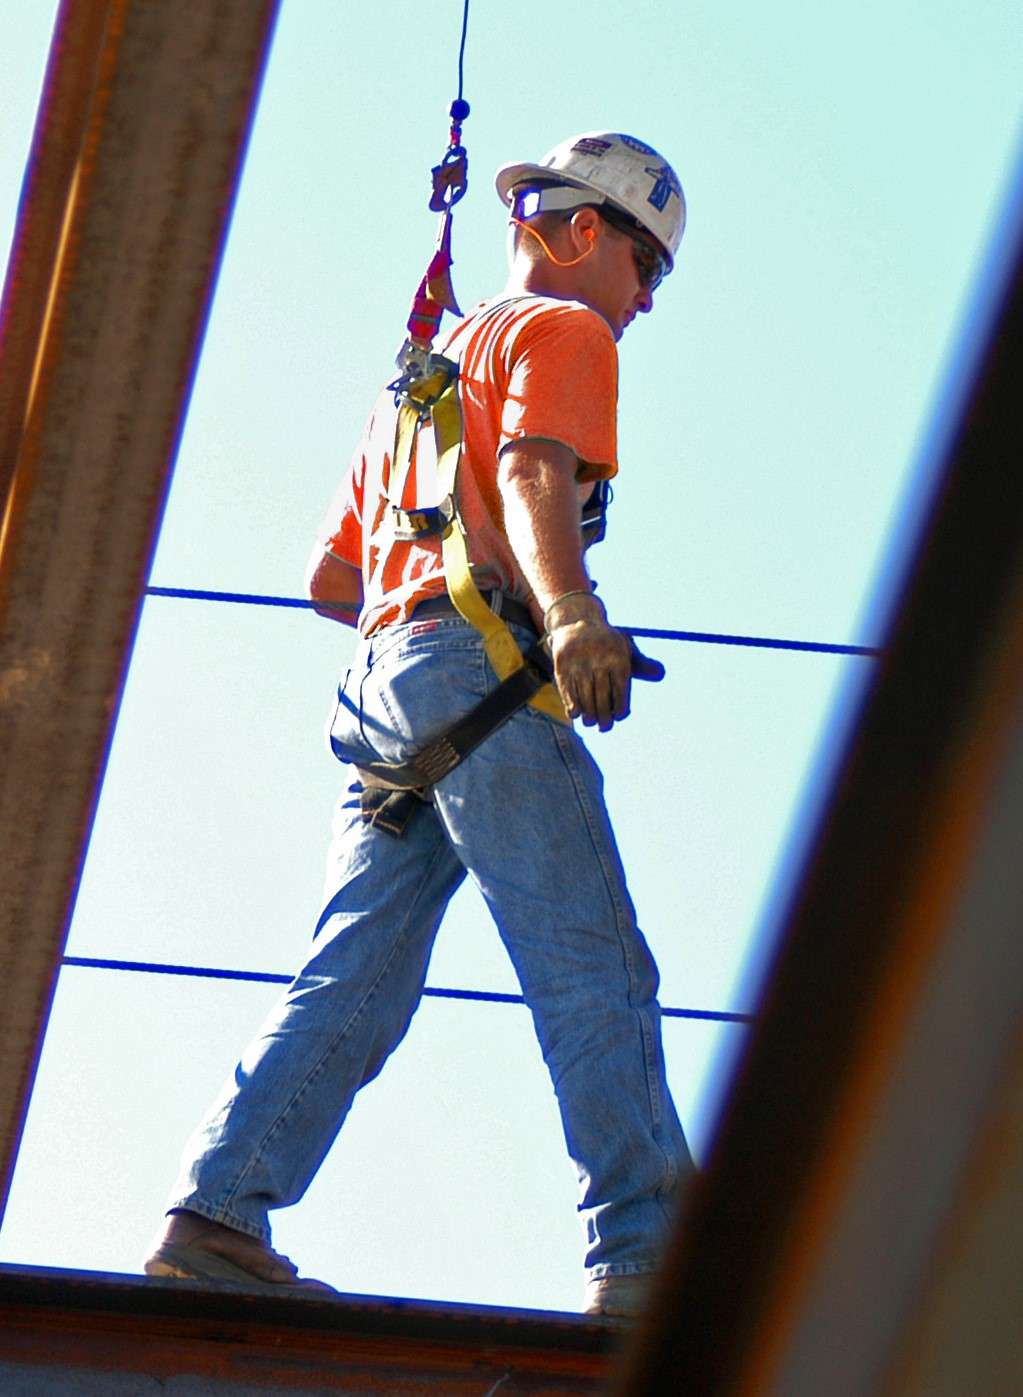 Construction worker wearing fall harness